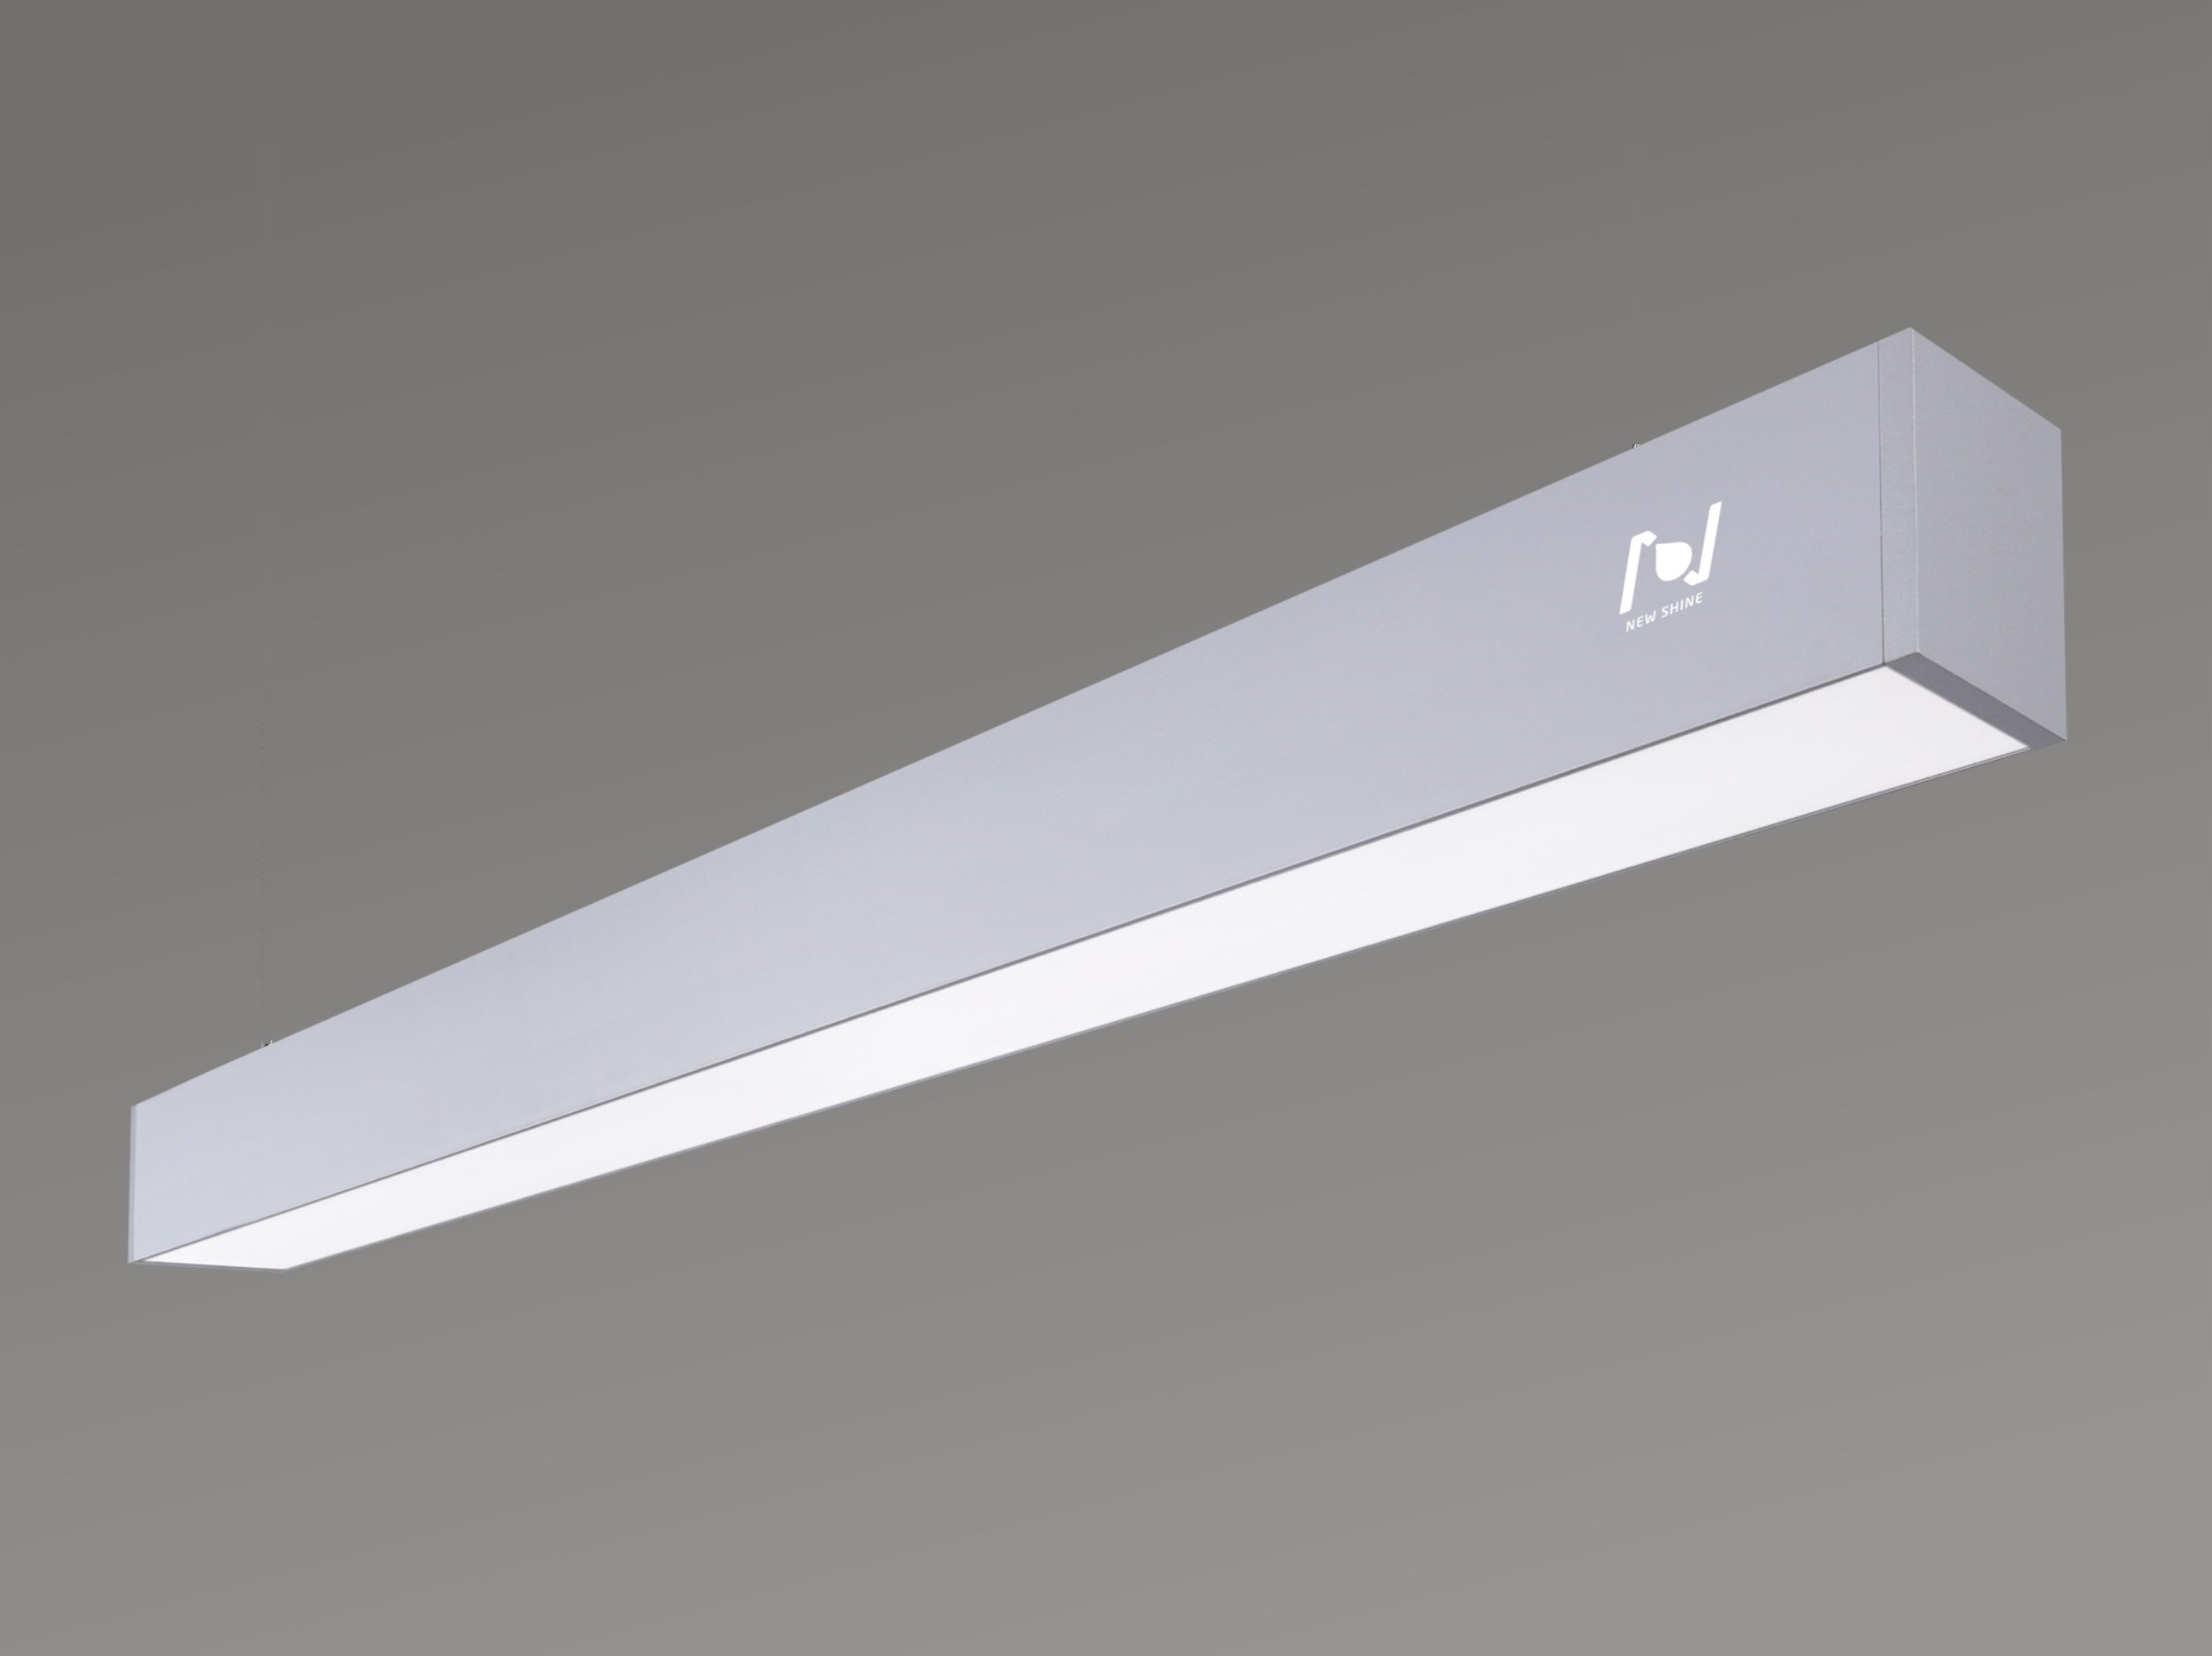 Office linear led linear light LL0129M-1500